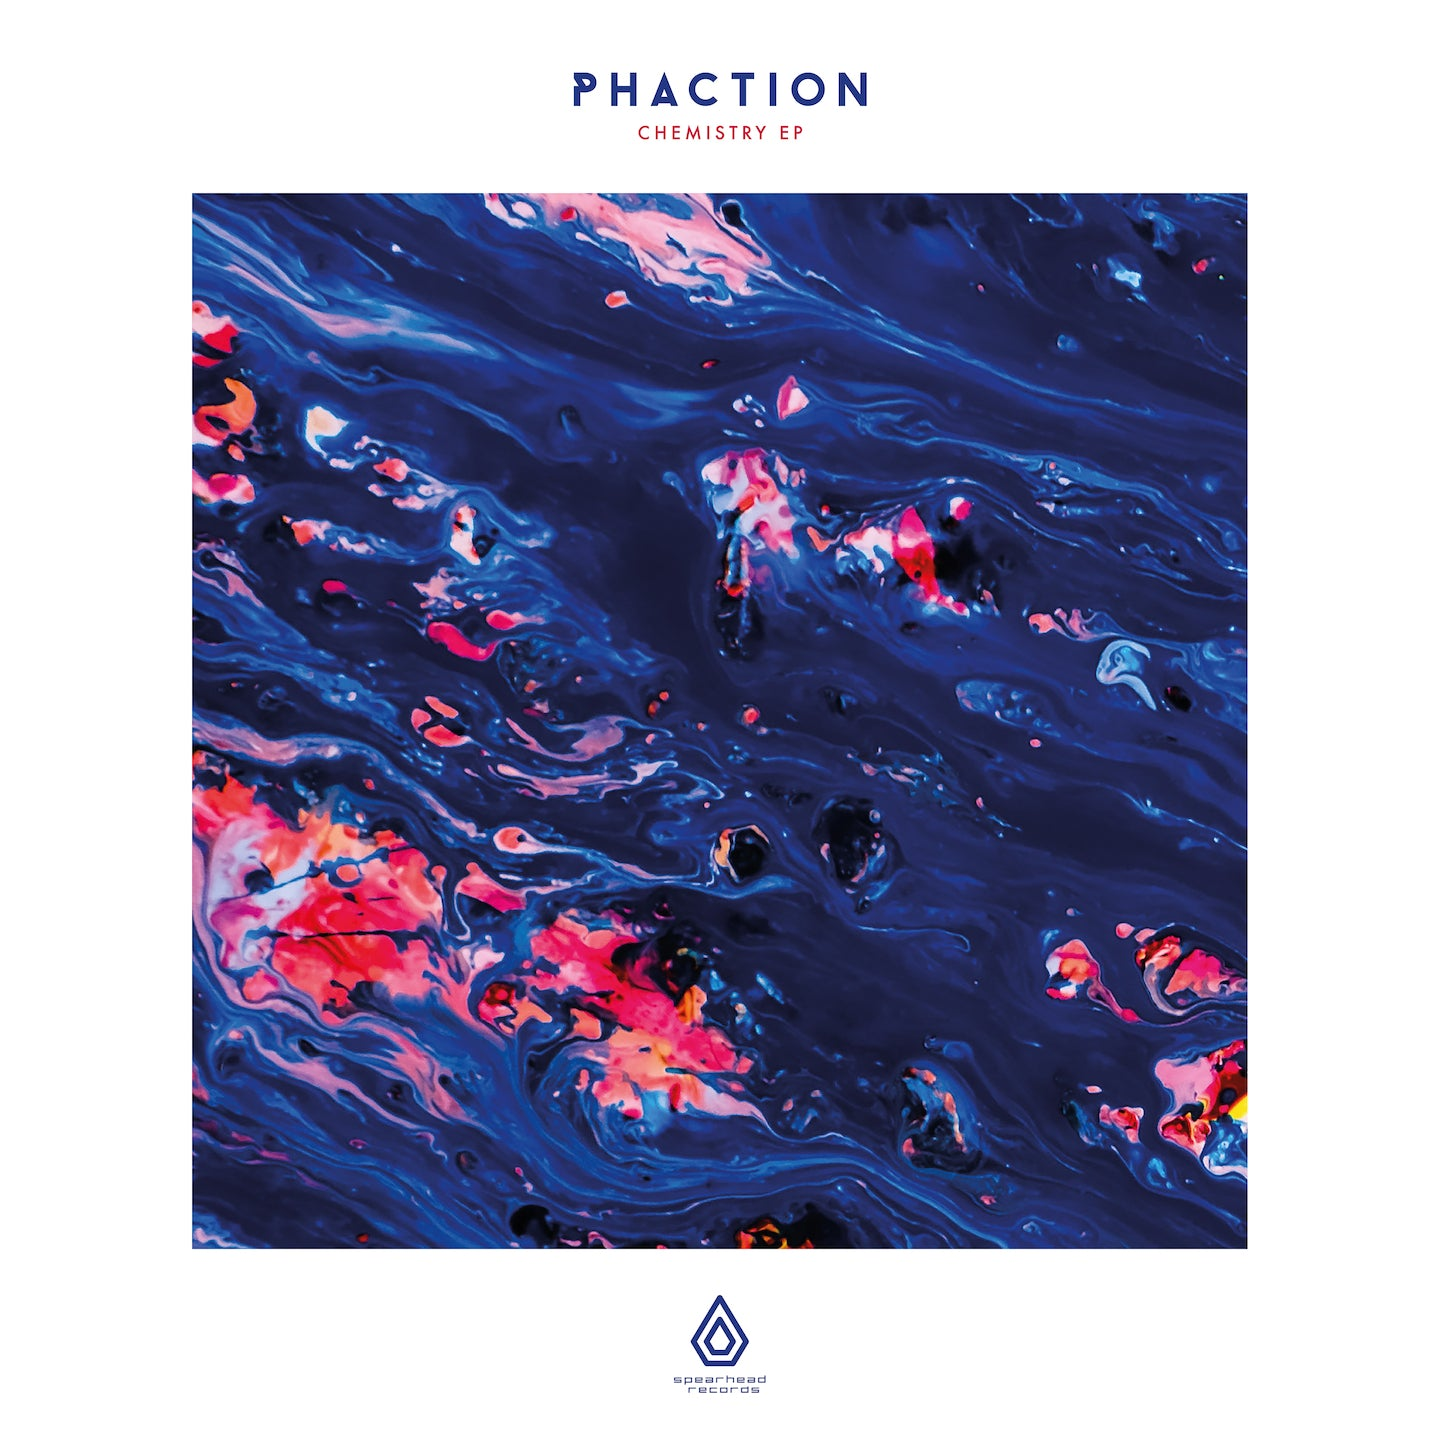 Phaction - Obsession feat. Hugh Hardie & Riya - Download